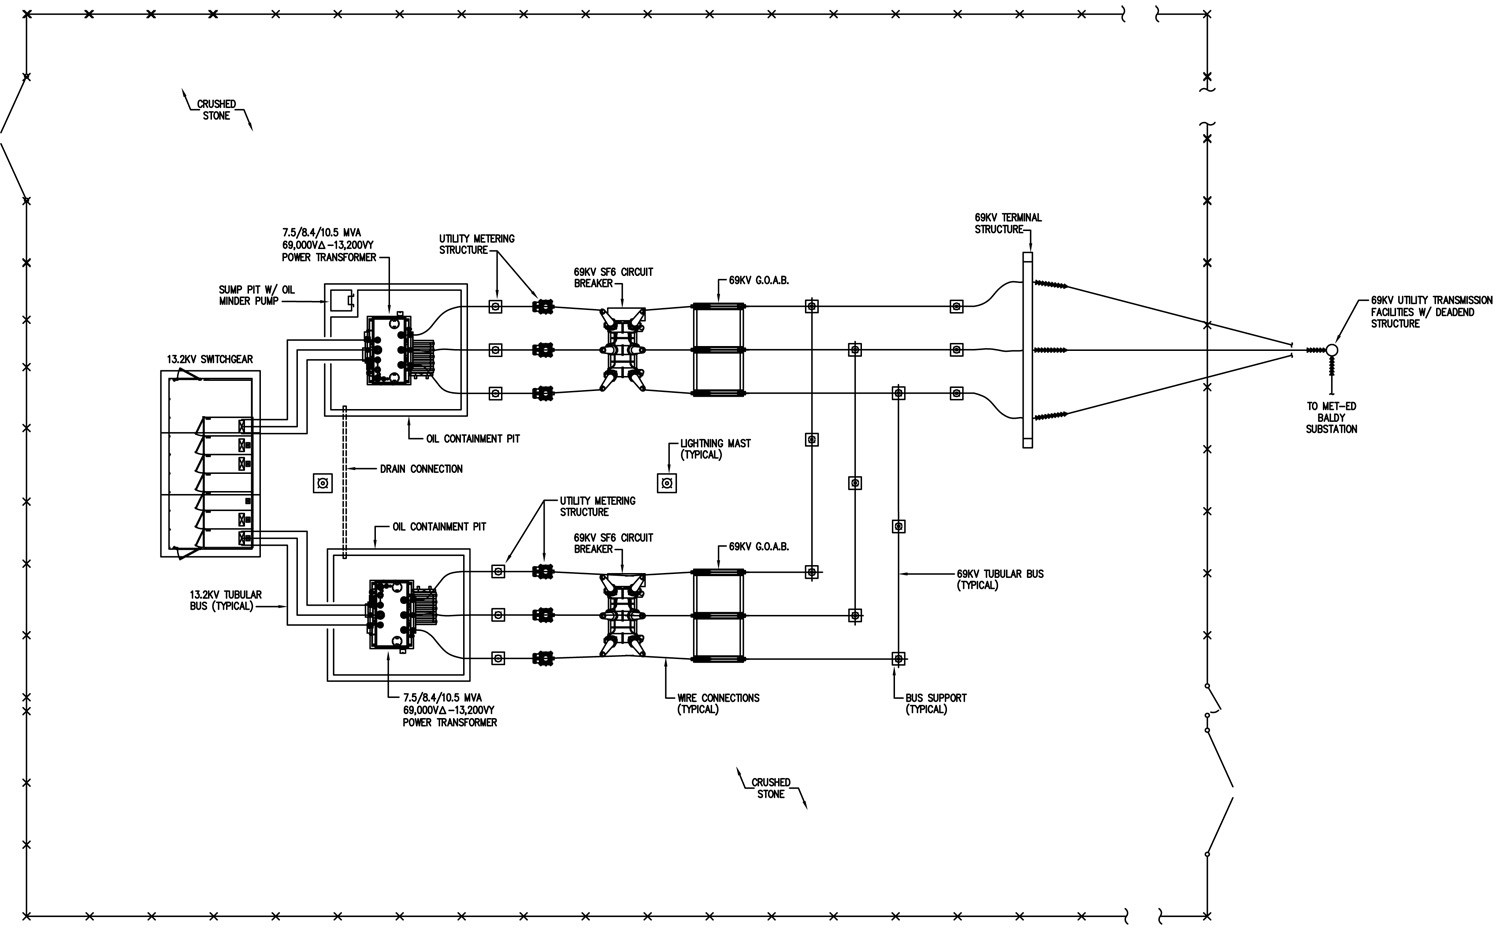 Substation Schematic Diagram    Wiring Diagram